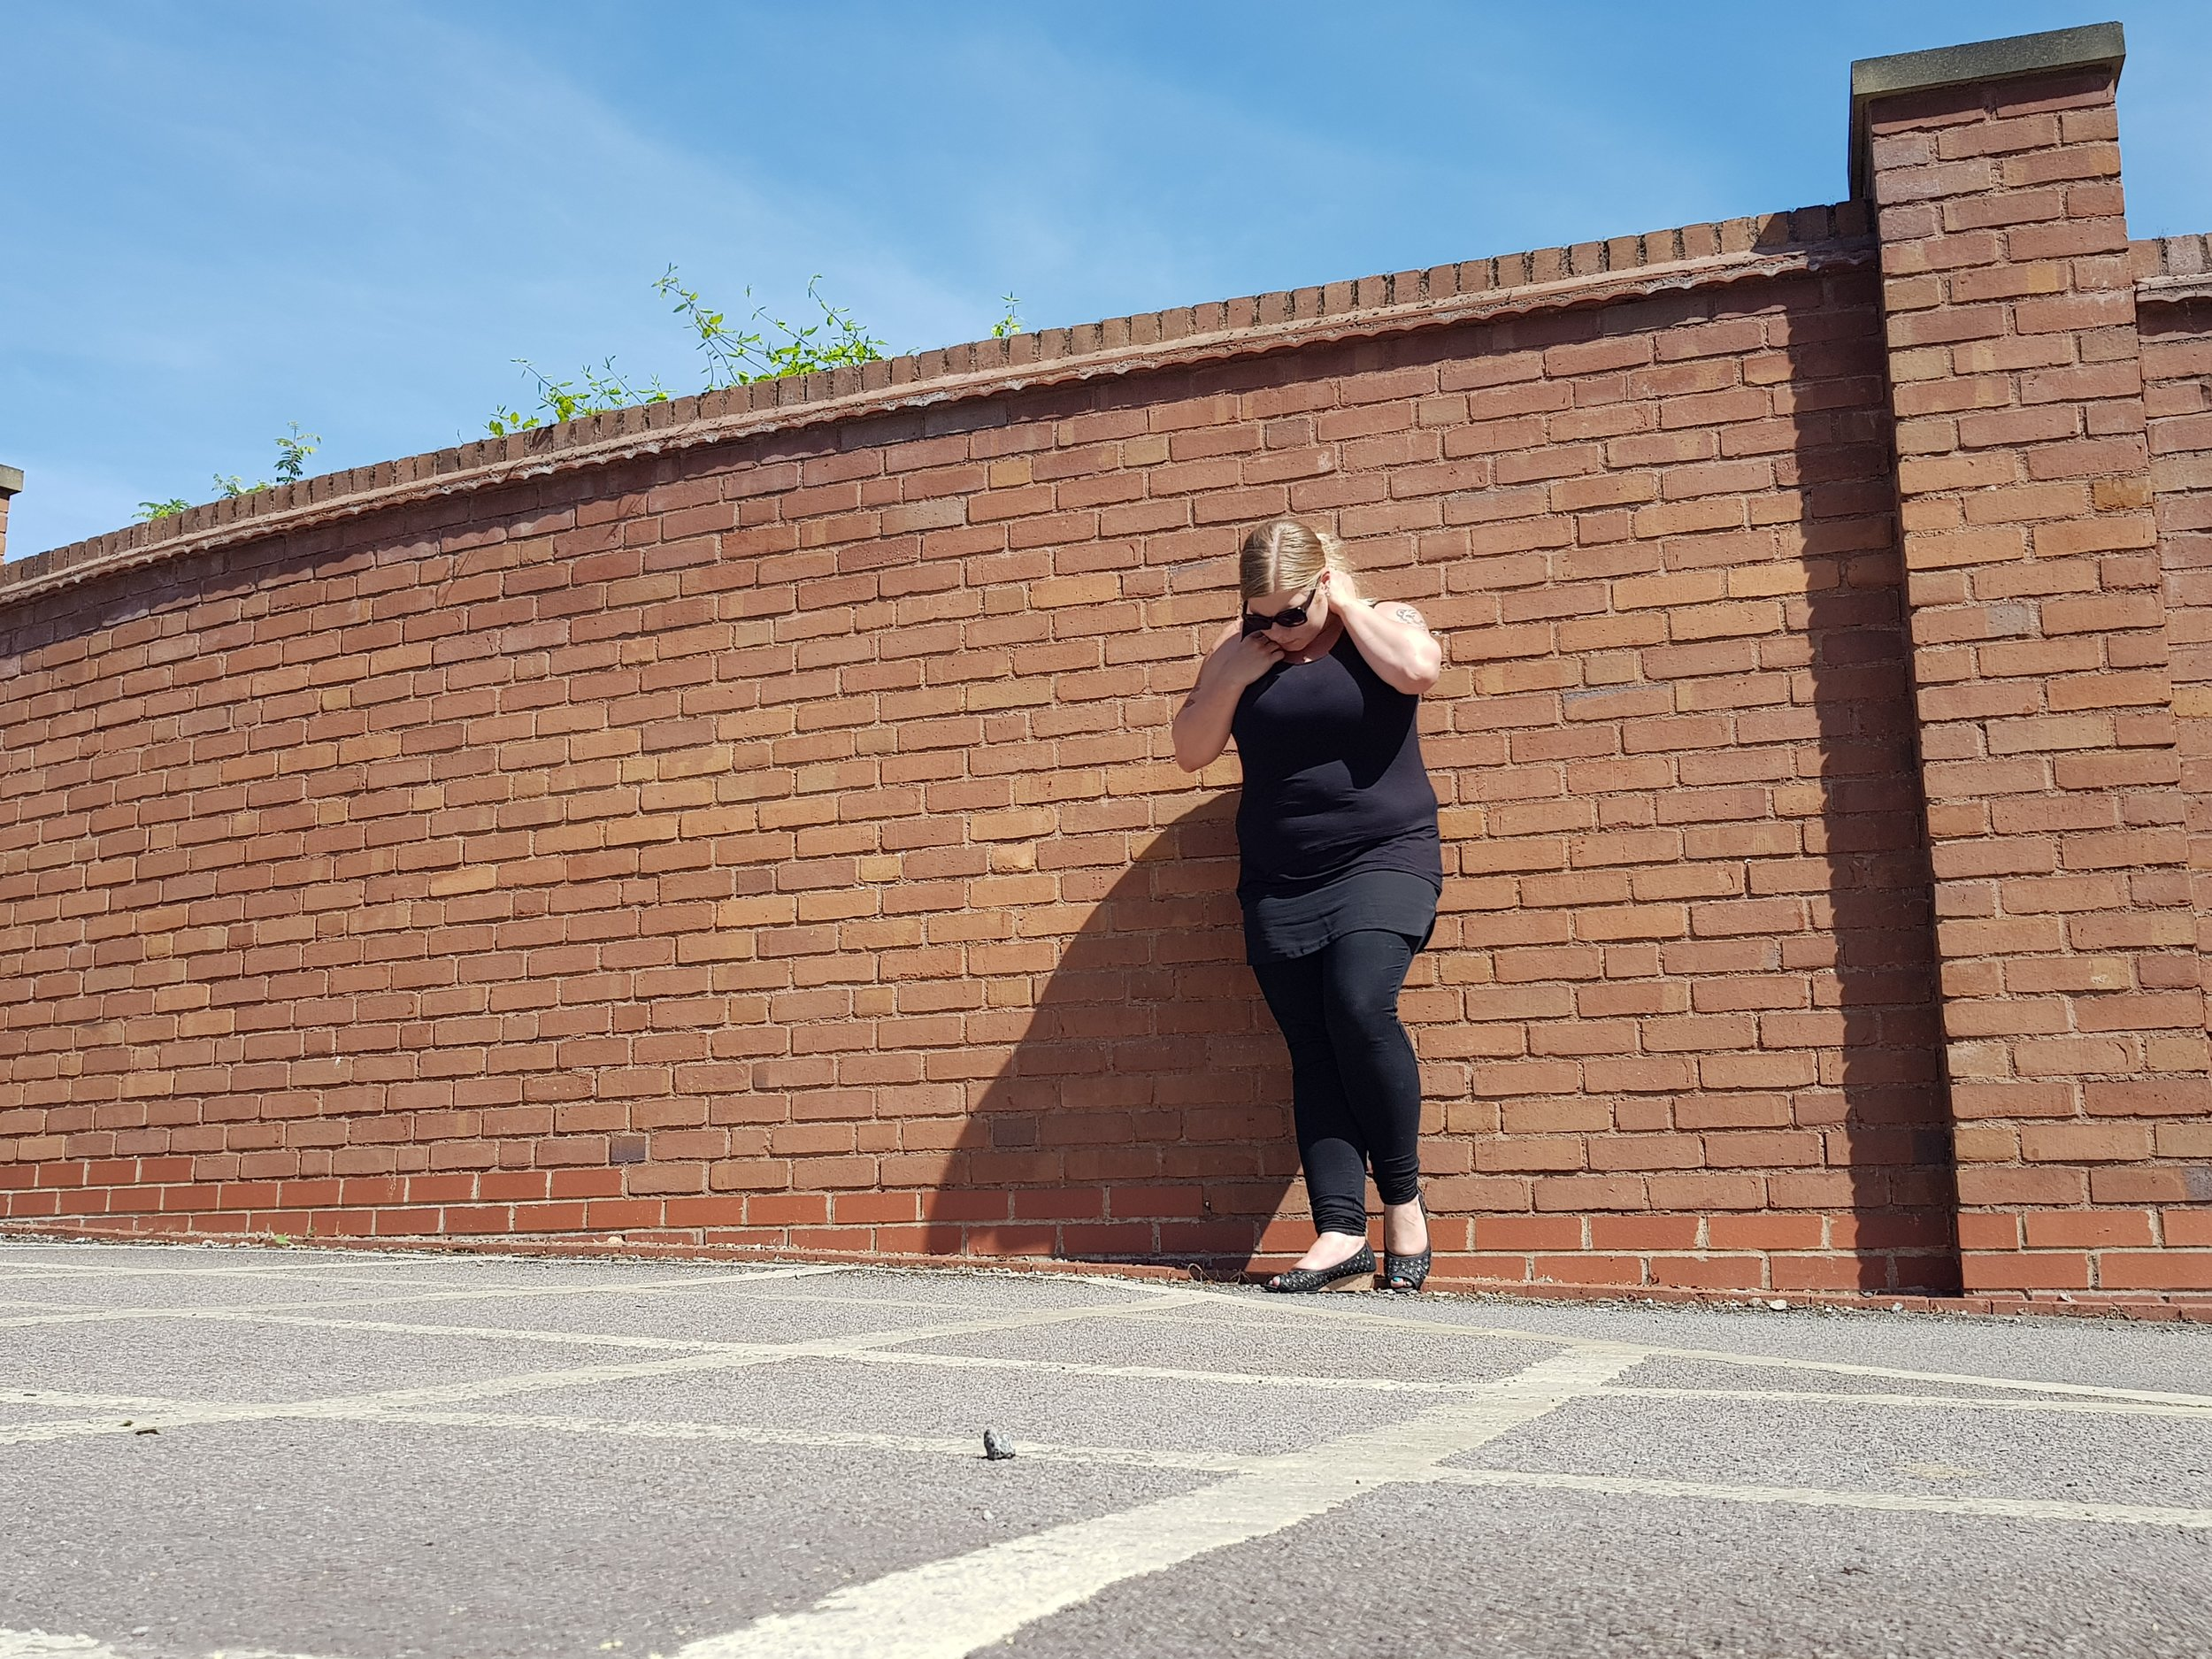 Me Becoming Mum parenting and lifestyle blog